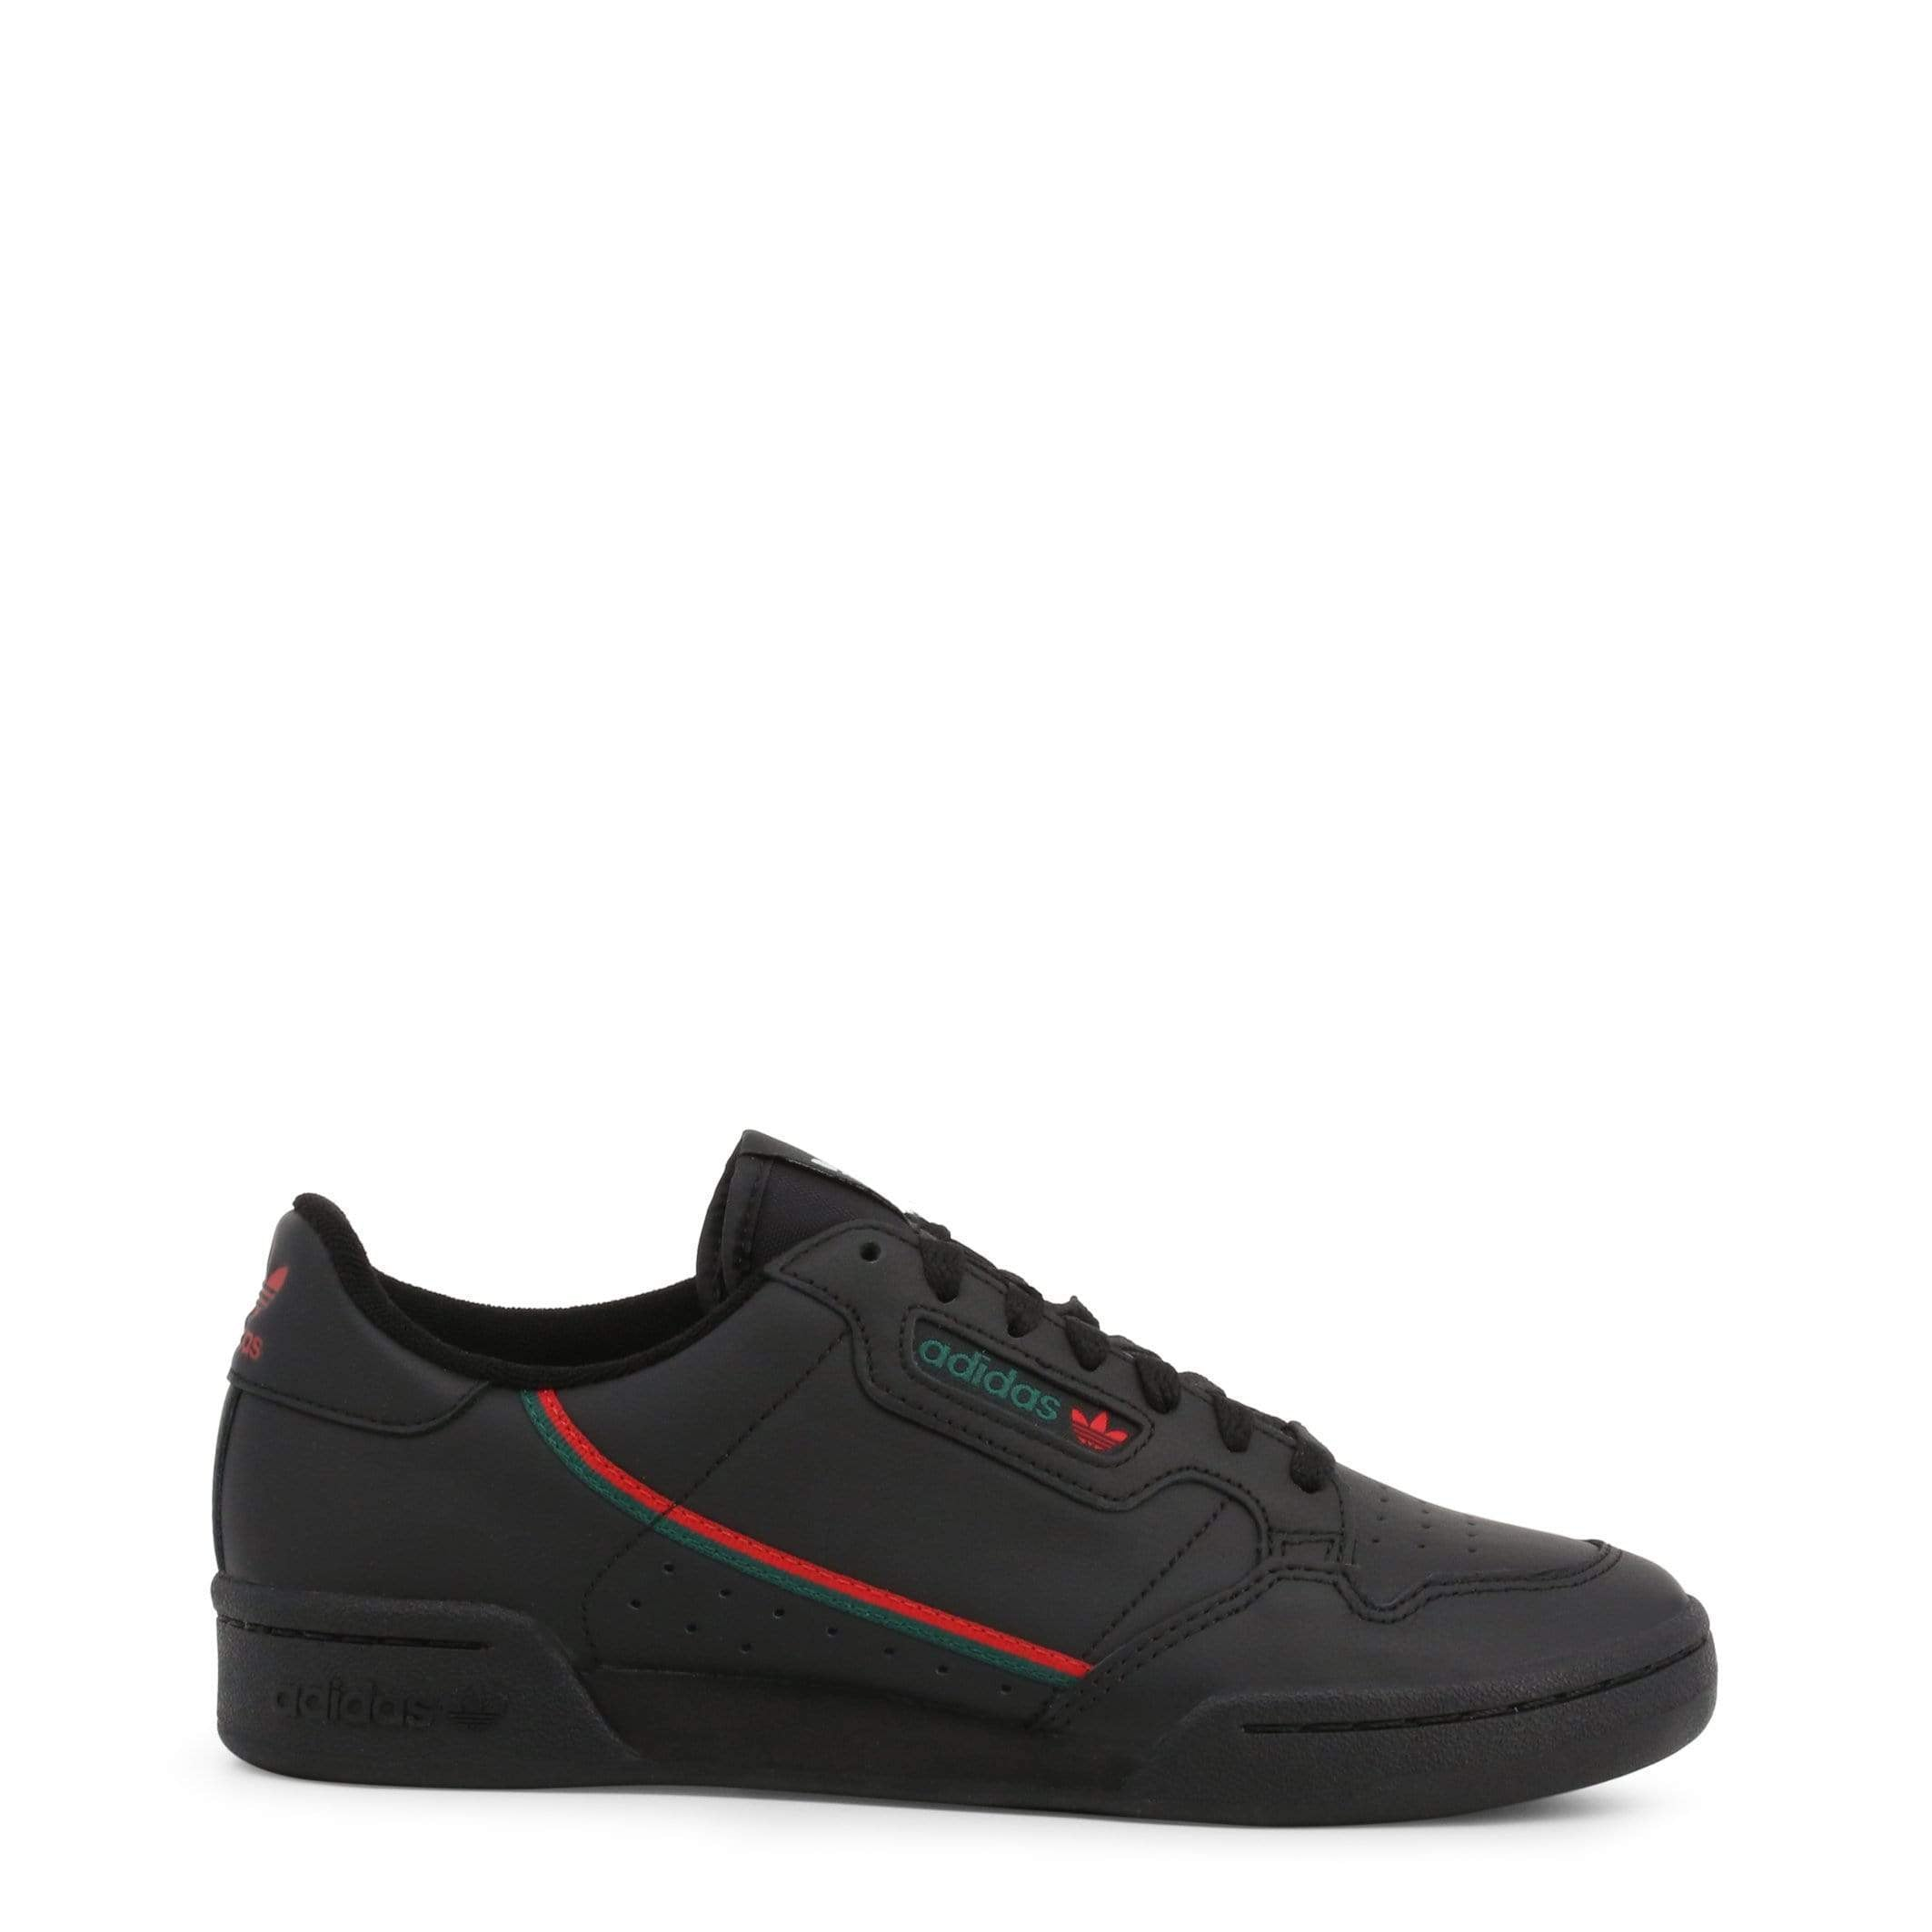 Adidas Shoes Sneakers black / UK 3.5 Adidas - Continental80